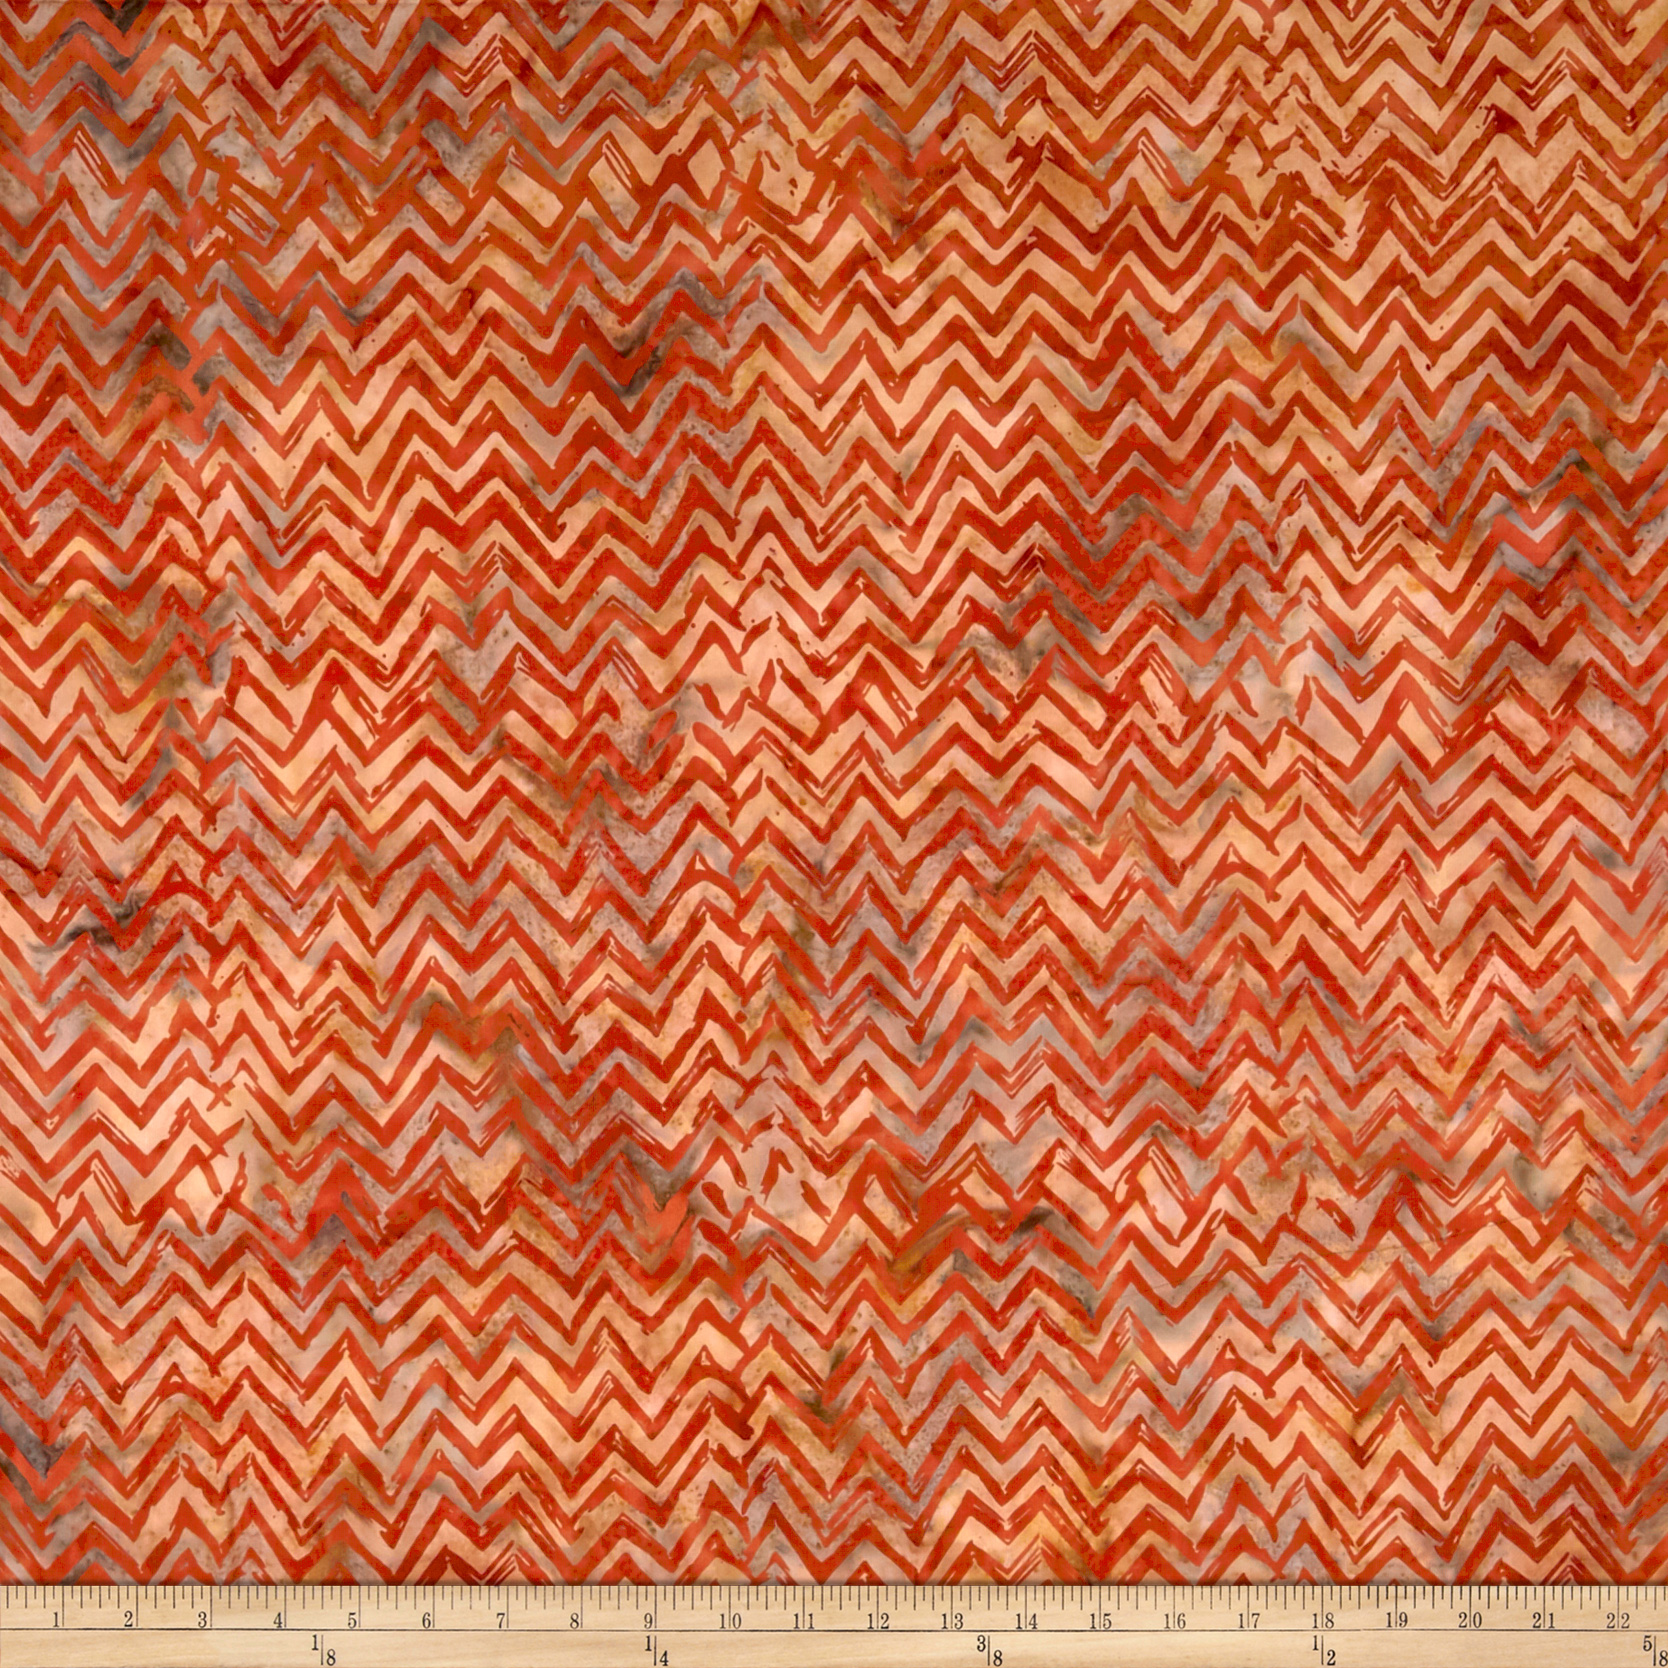 Anthology Batik Chevron Spice Fabric